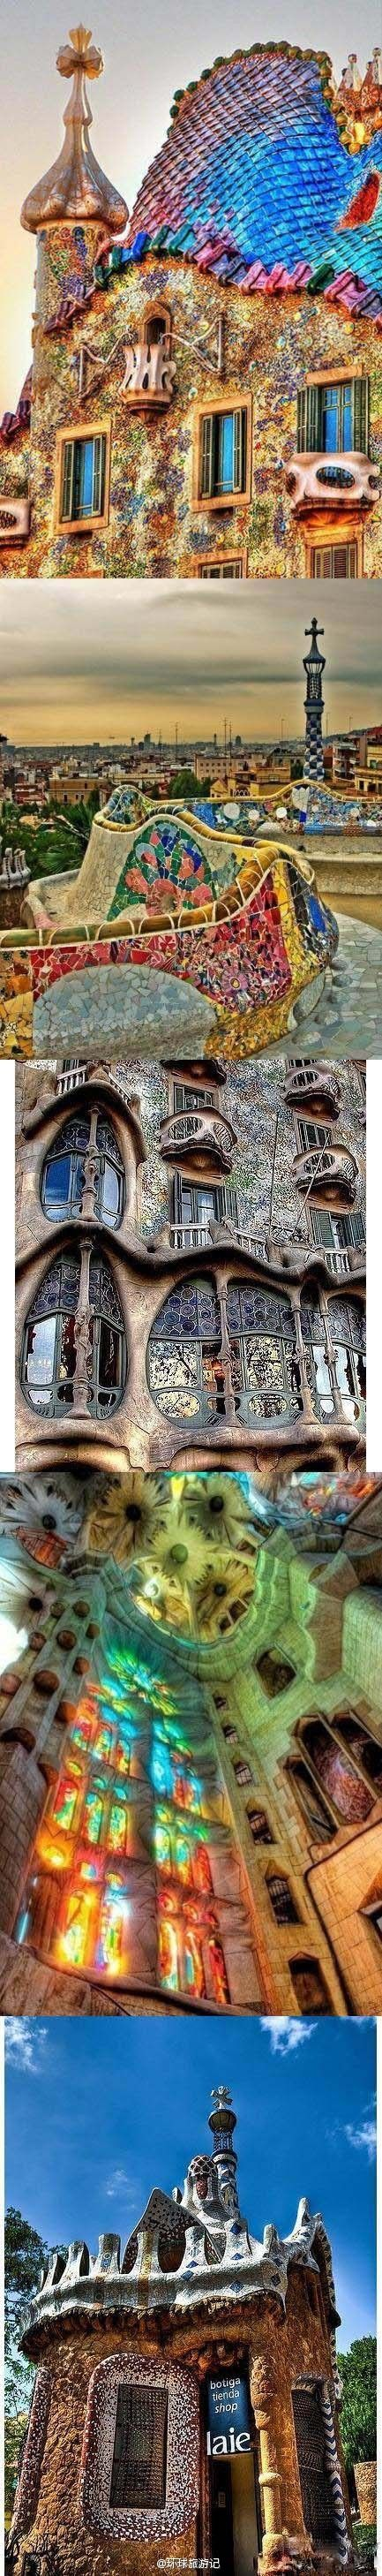 Barcelona -Gaudi's work is absolutely stunning, it makes you feel like you have jumped into a fairy tale book and never want to leave.